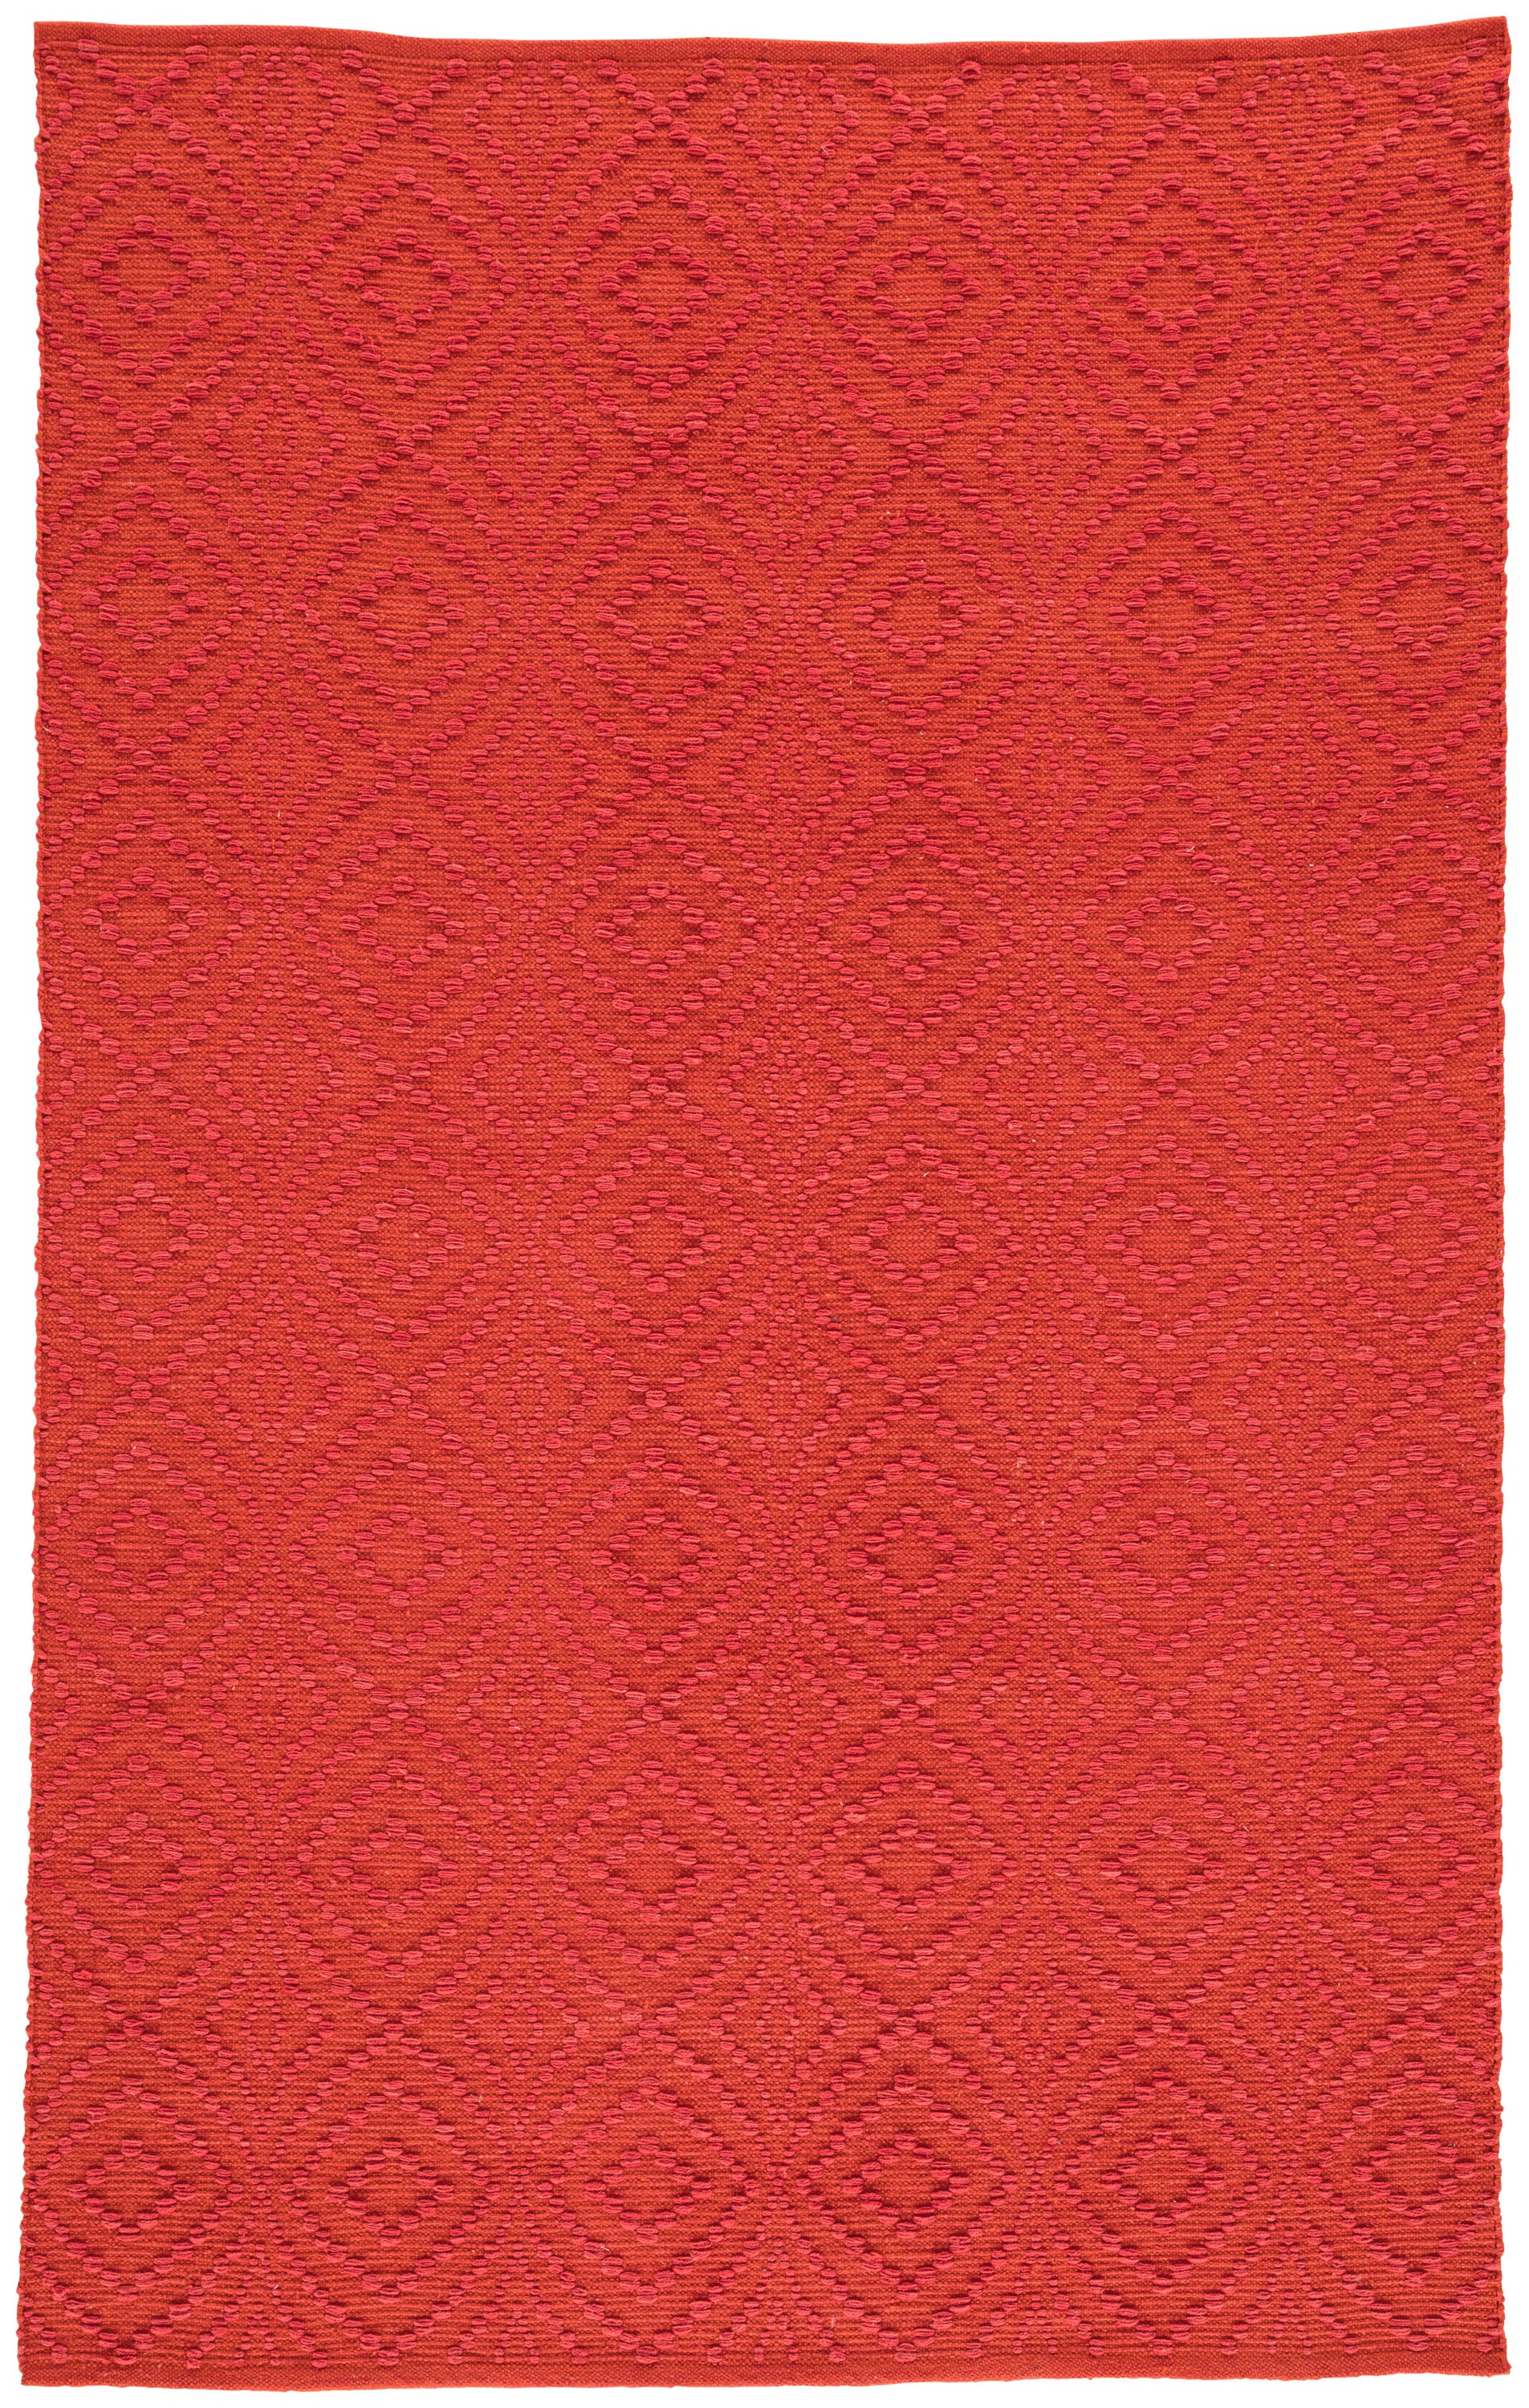 Rectangle 5x8 Red Trellis Hand Woven Synthetics Contemporary recommended for Bedroom, Bathroom, Outdoor, Dining Room, Office, Hallway, Living Room